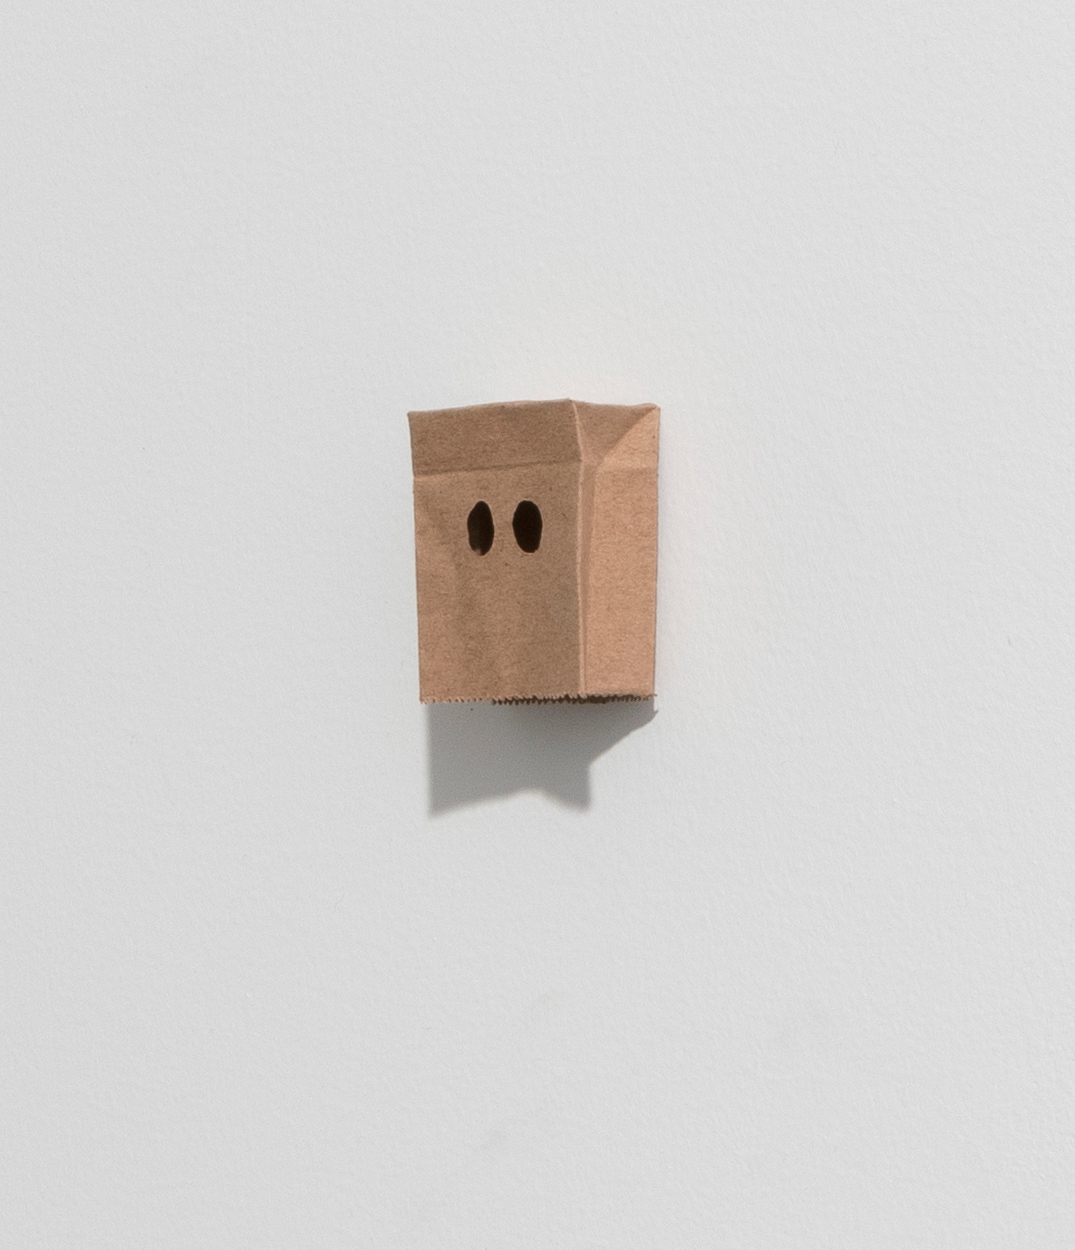 Nick Doyle. <em>Shame</em>, 2019. Re-purposed paper bag, pva adhesive, 1 3/4 x 1 1/4 x 1/2 inches  (4.4 x 3.2 x 1.3 cm)